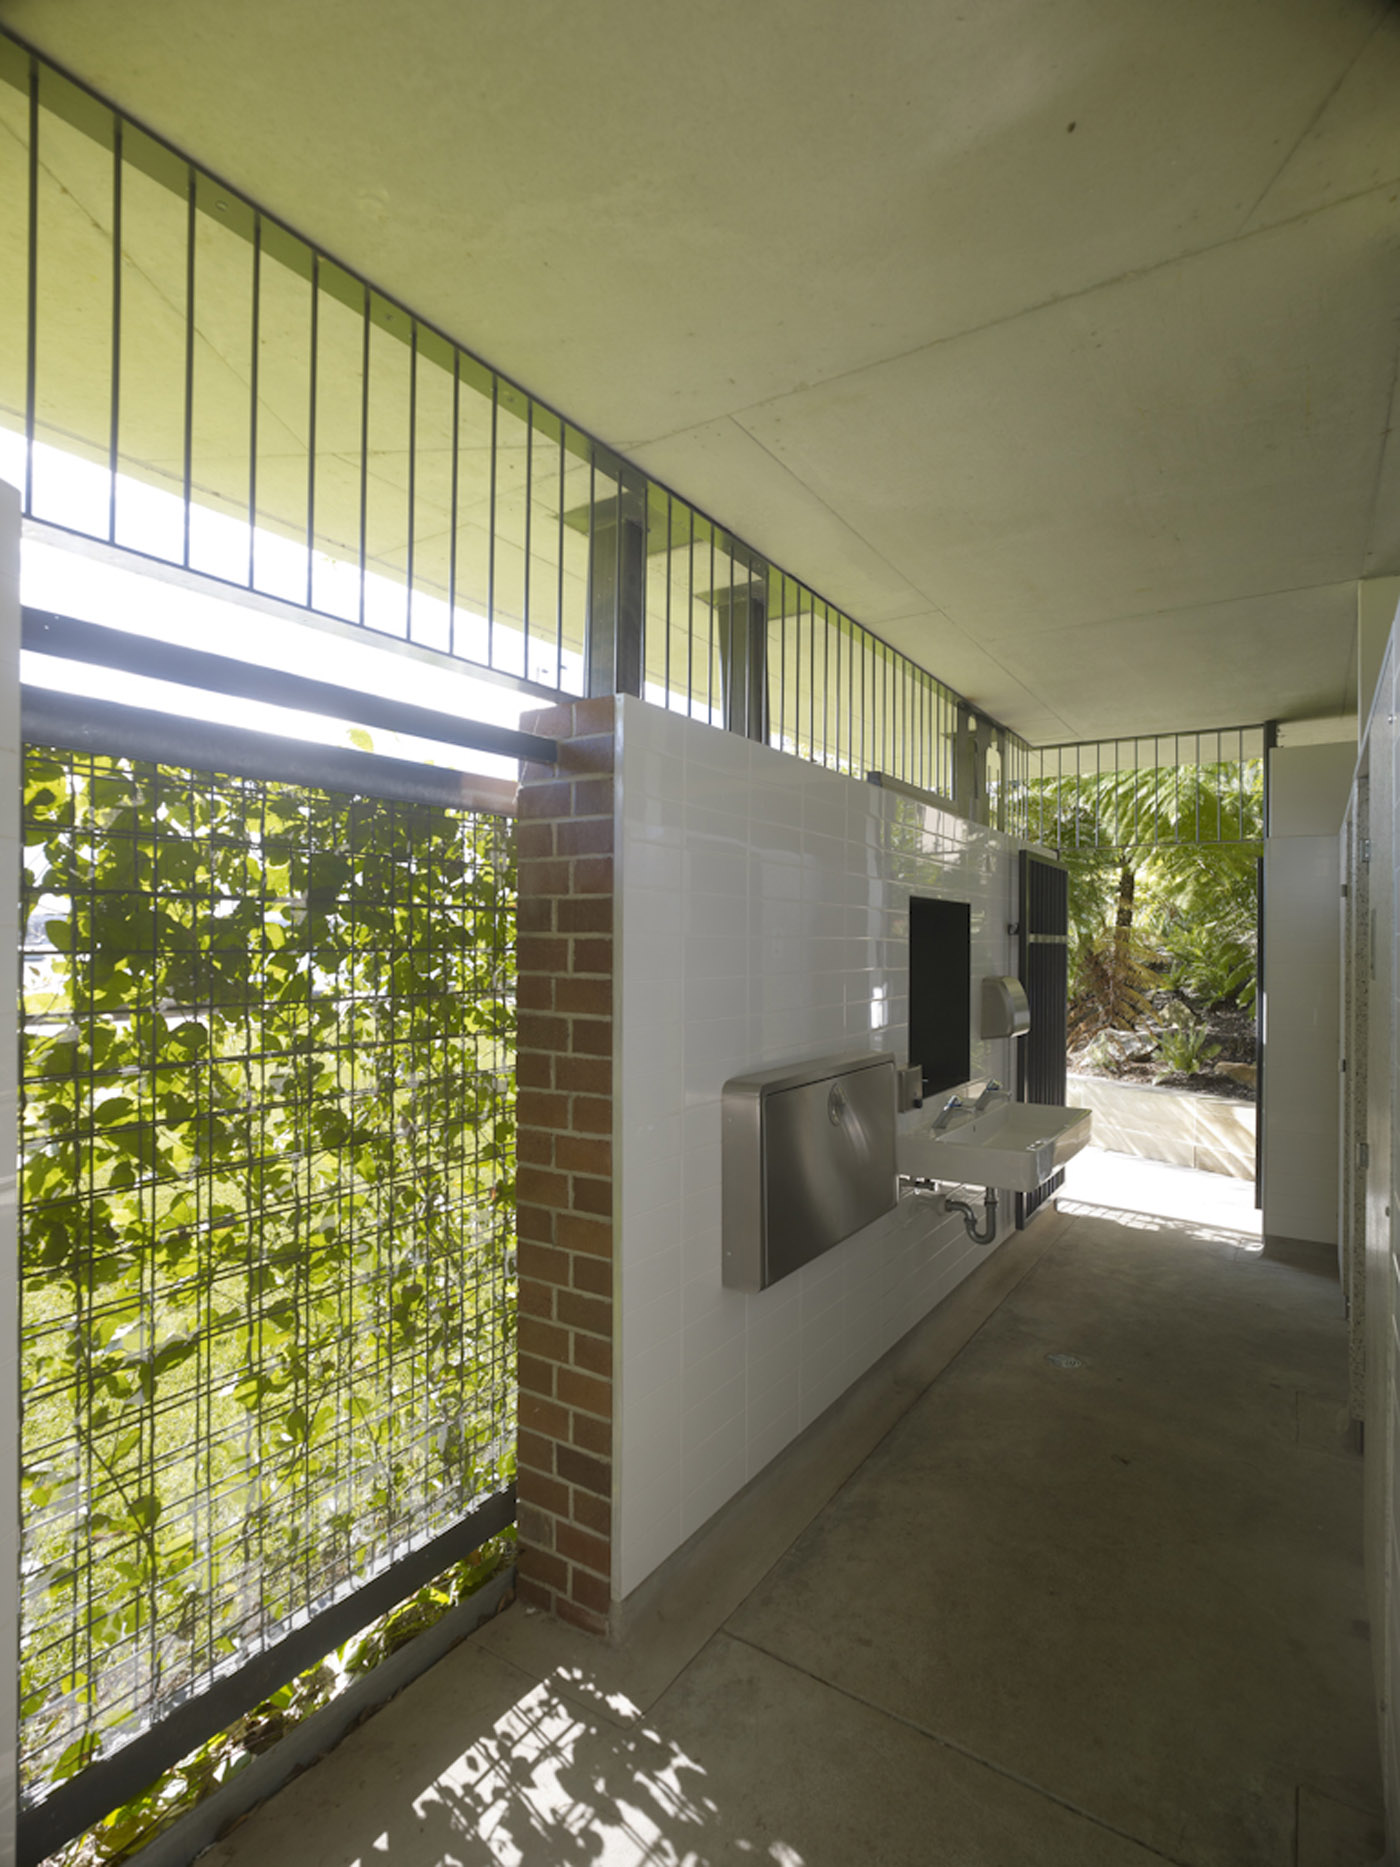 Beare Park Amenities by award winning Sydney public architecture firm Sam Crawford Architects. Green façade filtering light to the interior